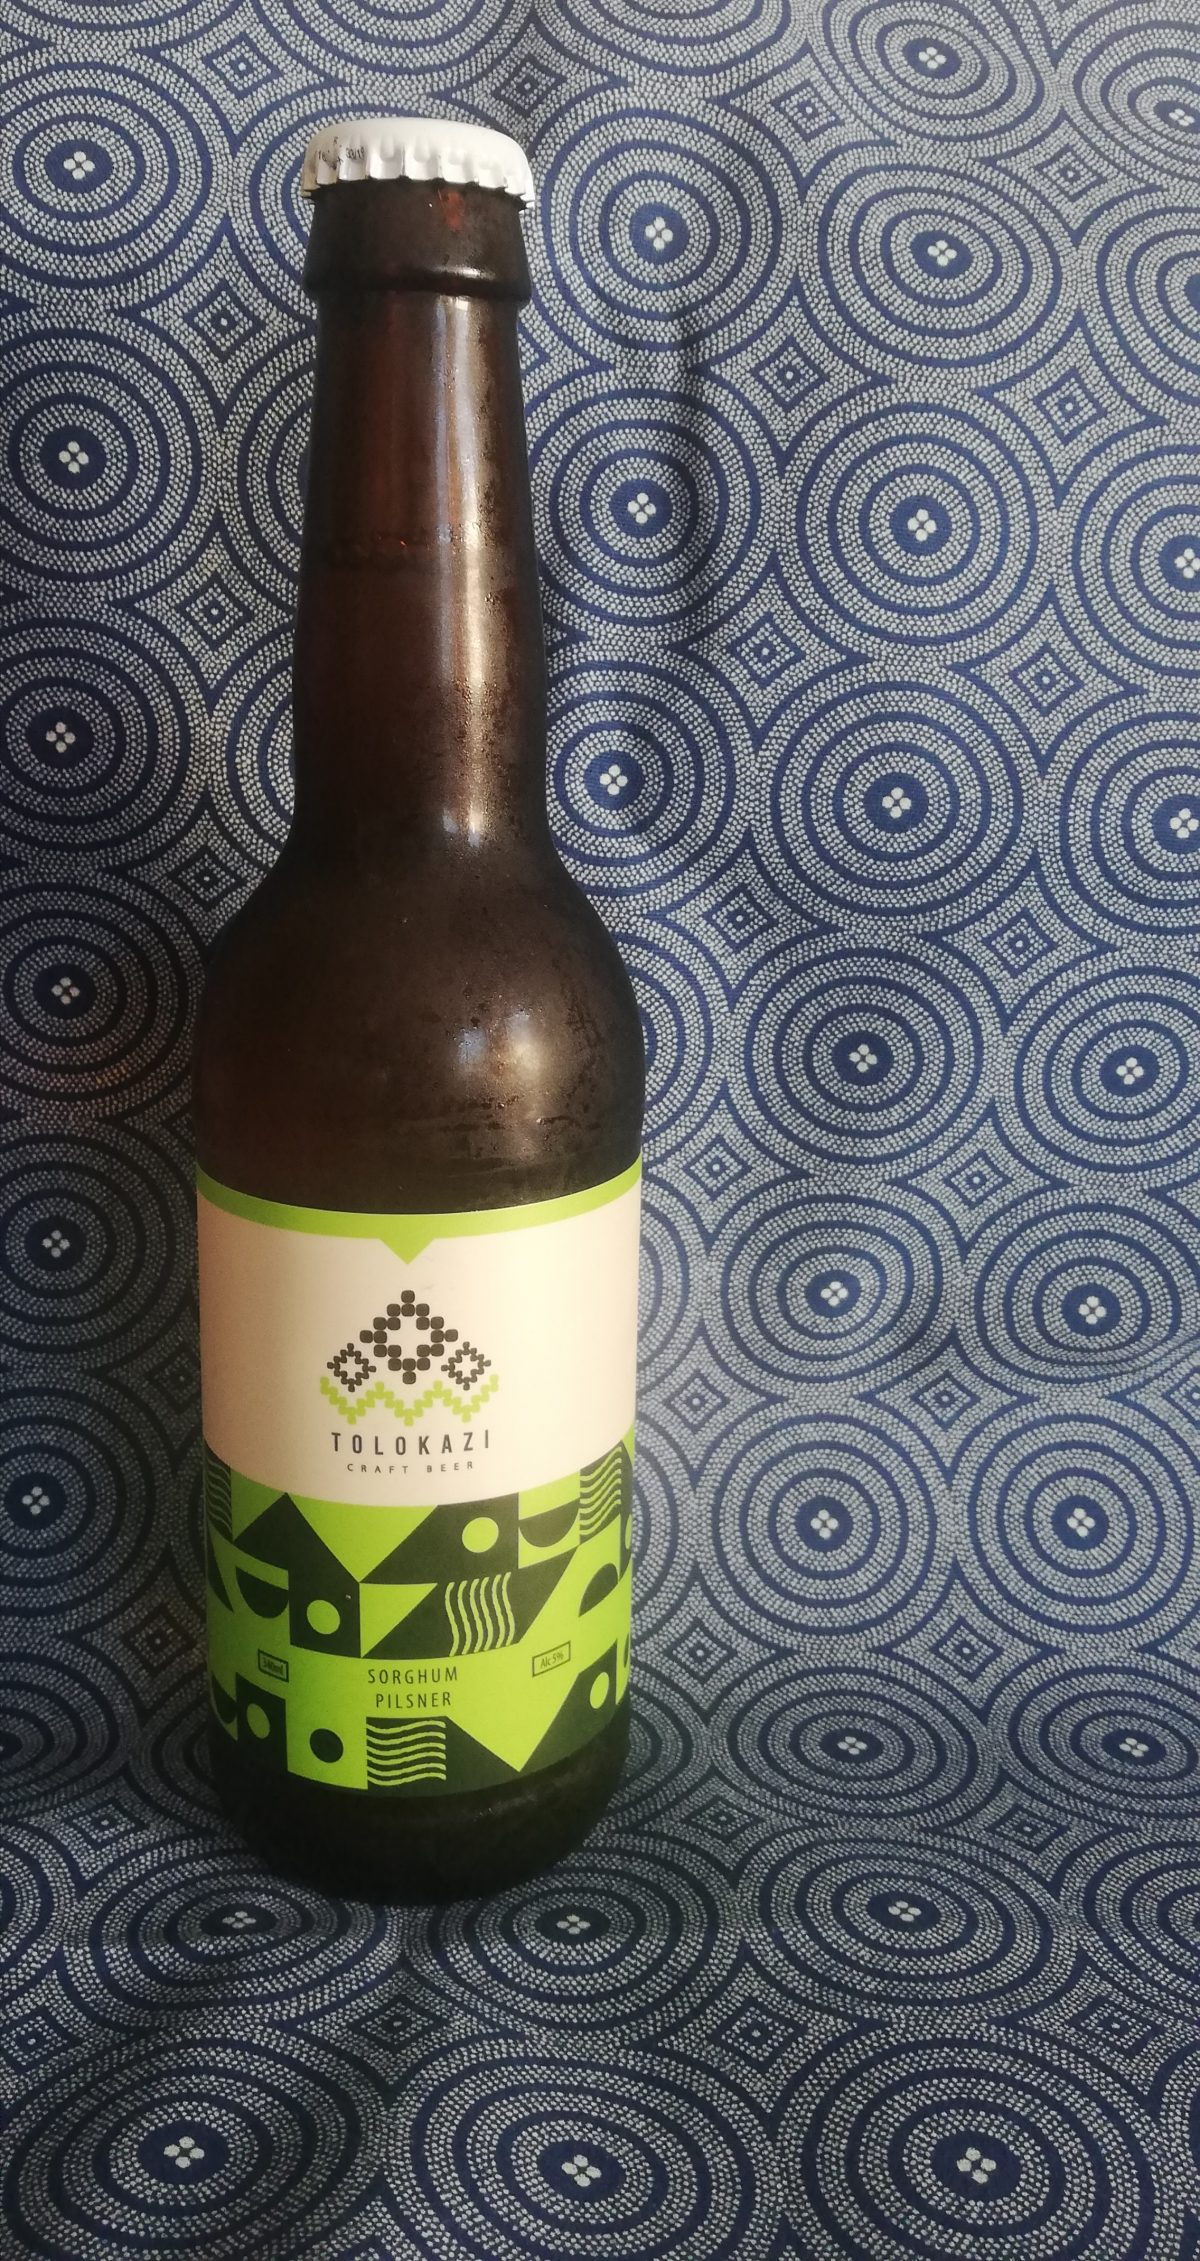 tolokazi beer south africa